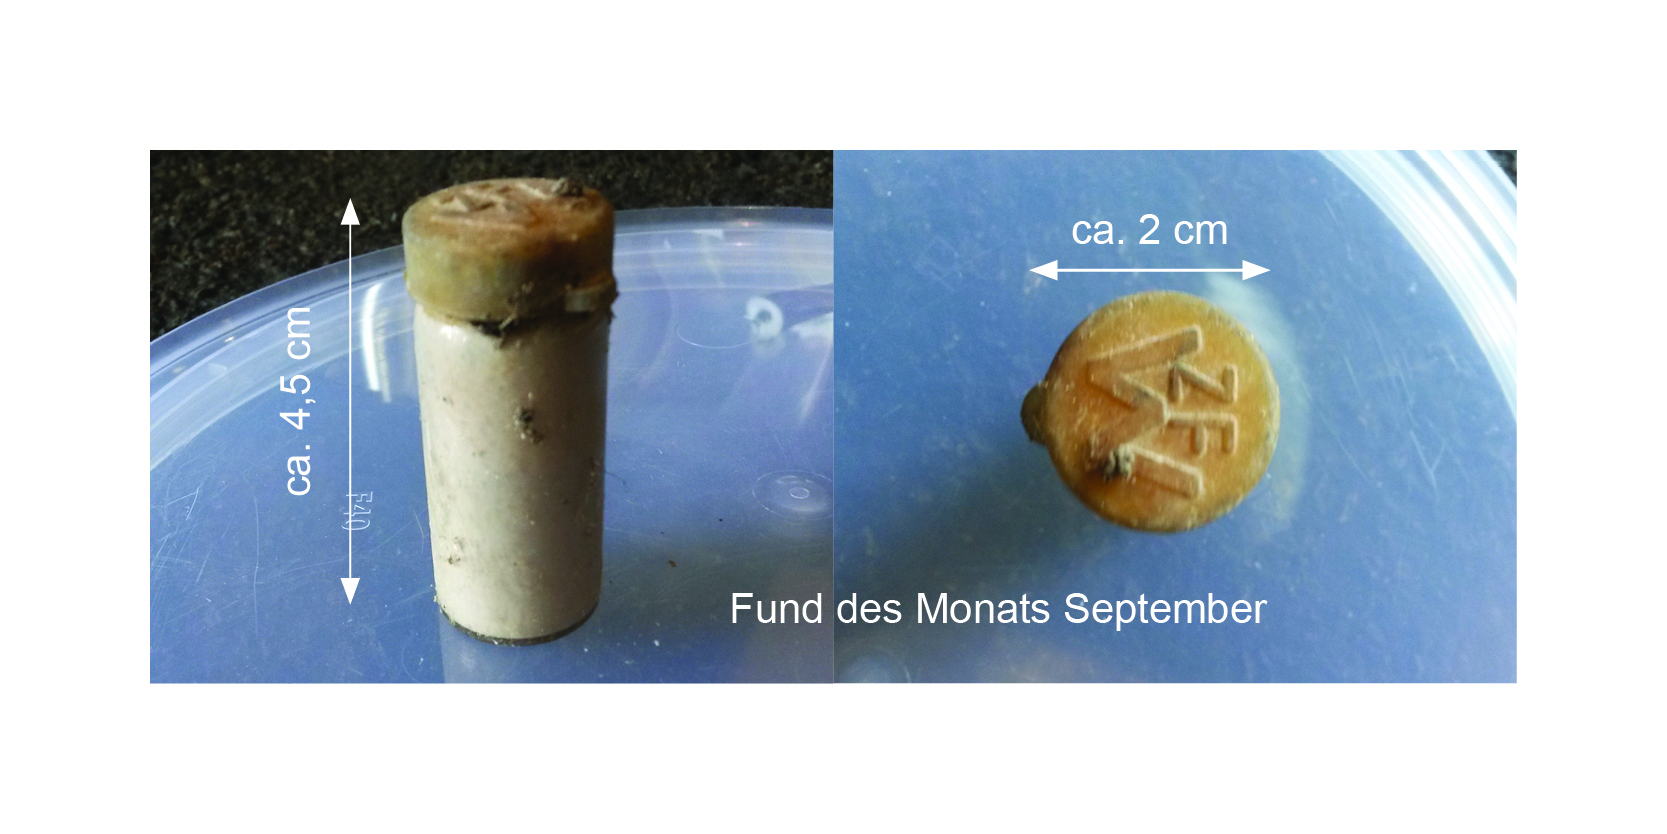 Fund des Monats September